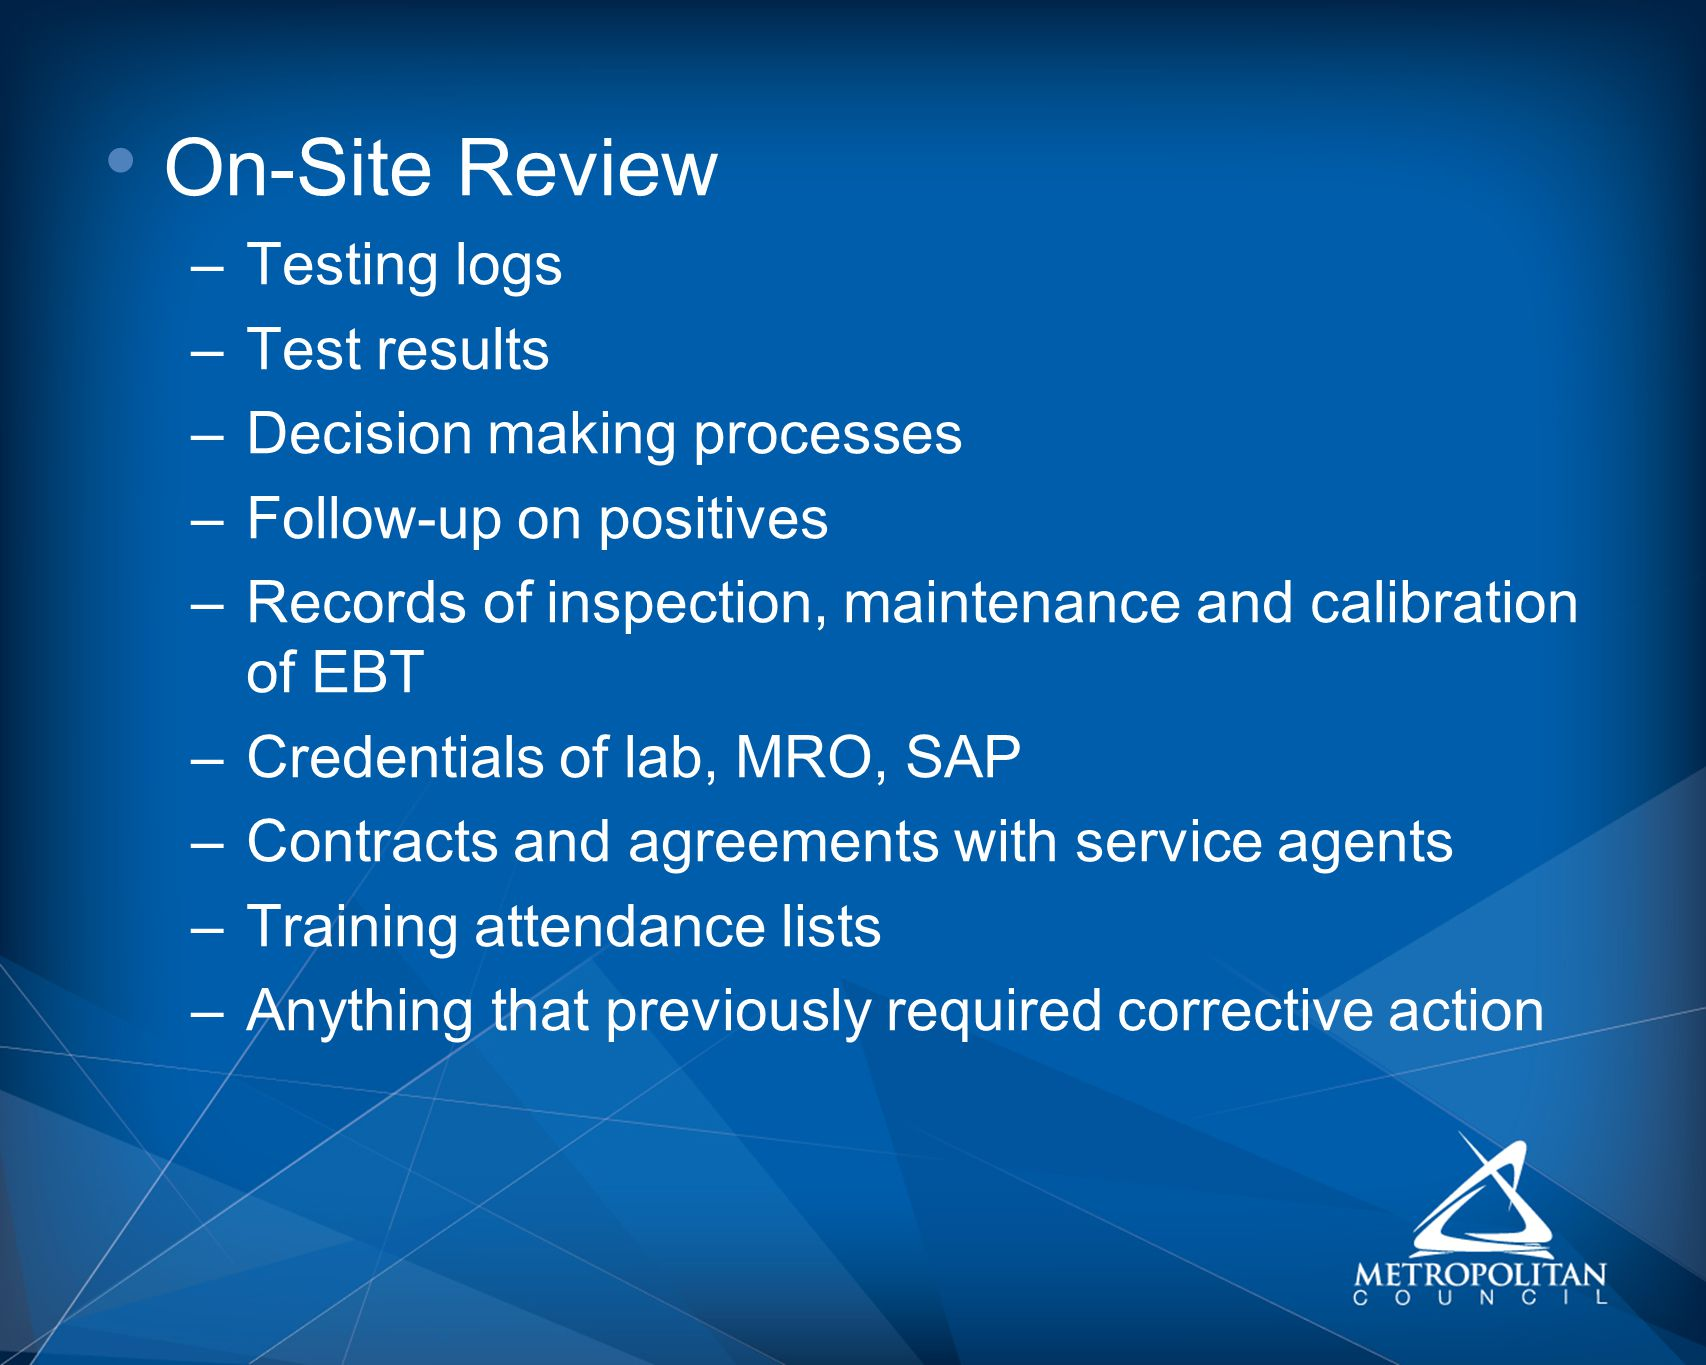 On-Site Review –Testing logs –Test results –Decision making processes –Follow-up on positives –Records of inspection, maintenance and calibration of EBT –Credentials of lab, MRO, SAP –Contracts and agreements with service agents –Training attendance lists –Anything that previously required corrective action